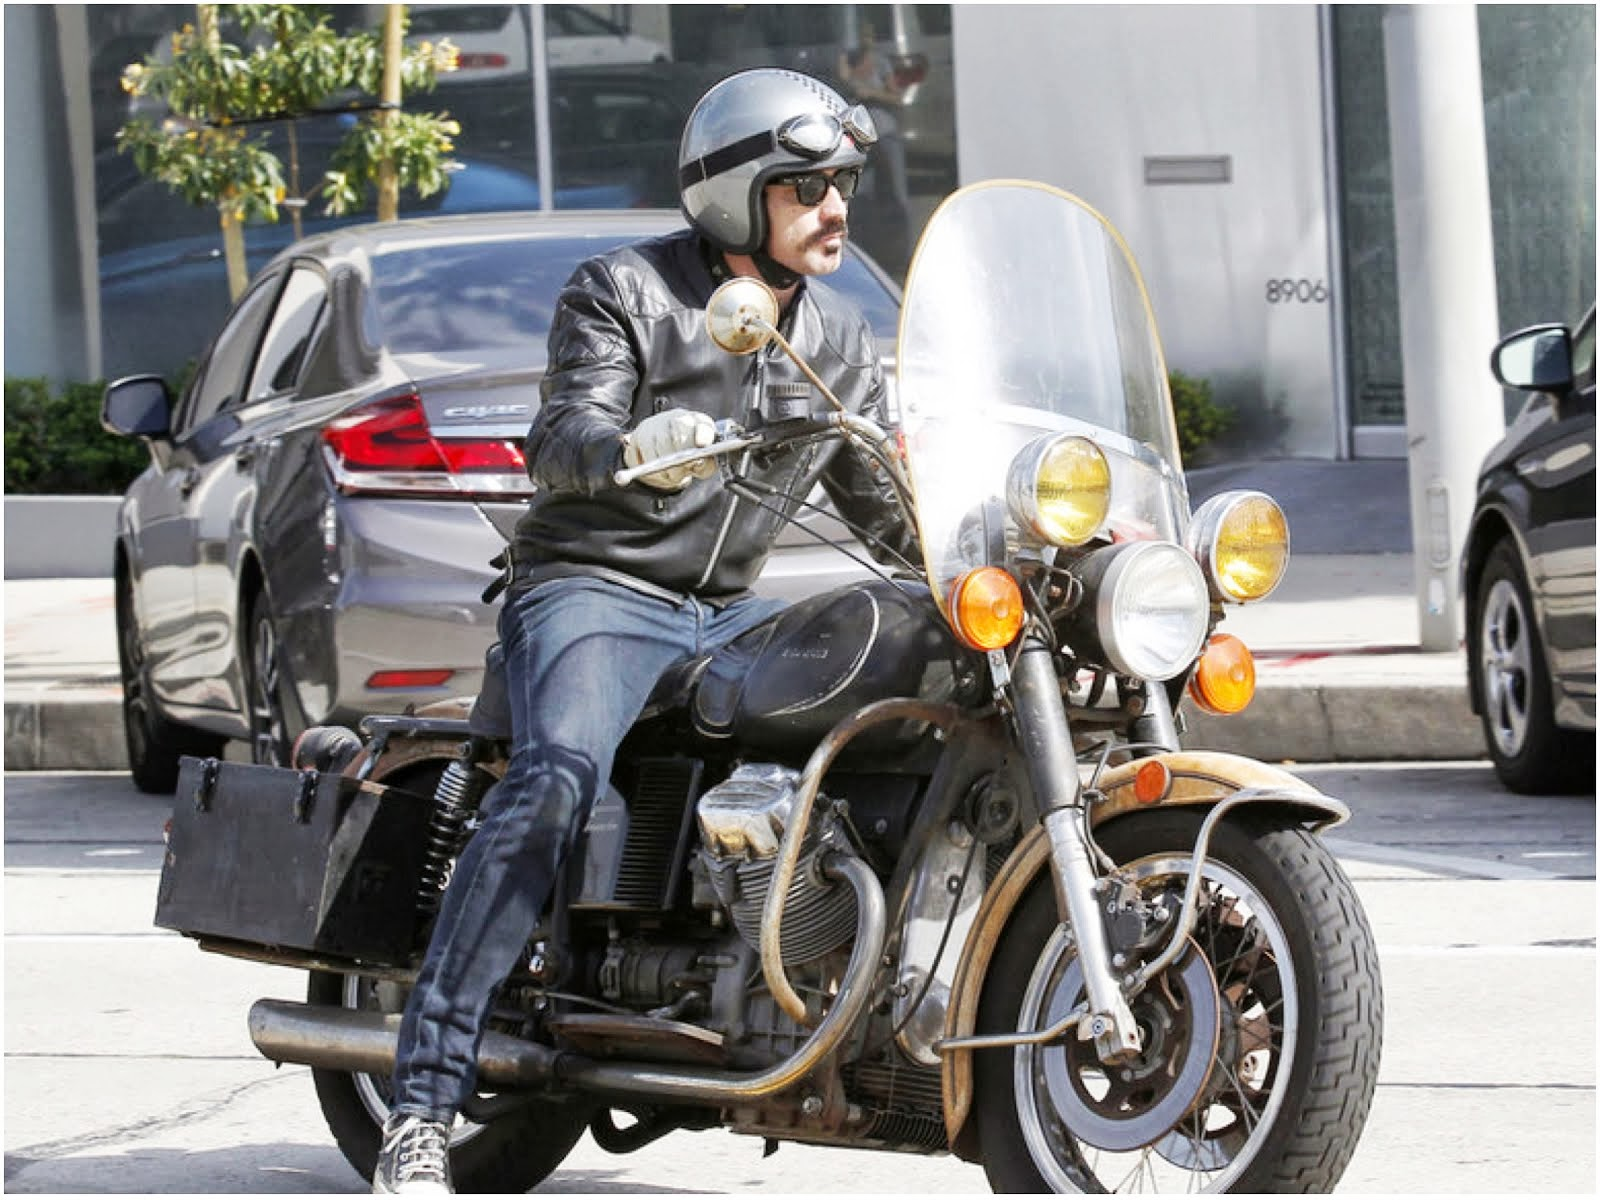 00O00 Menswear Blog: Ewan McGregor in Belstaff Douglas leather biker jacket - Los Angeles Street Style May 2013